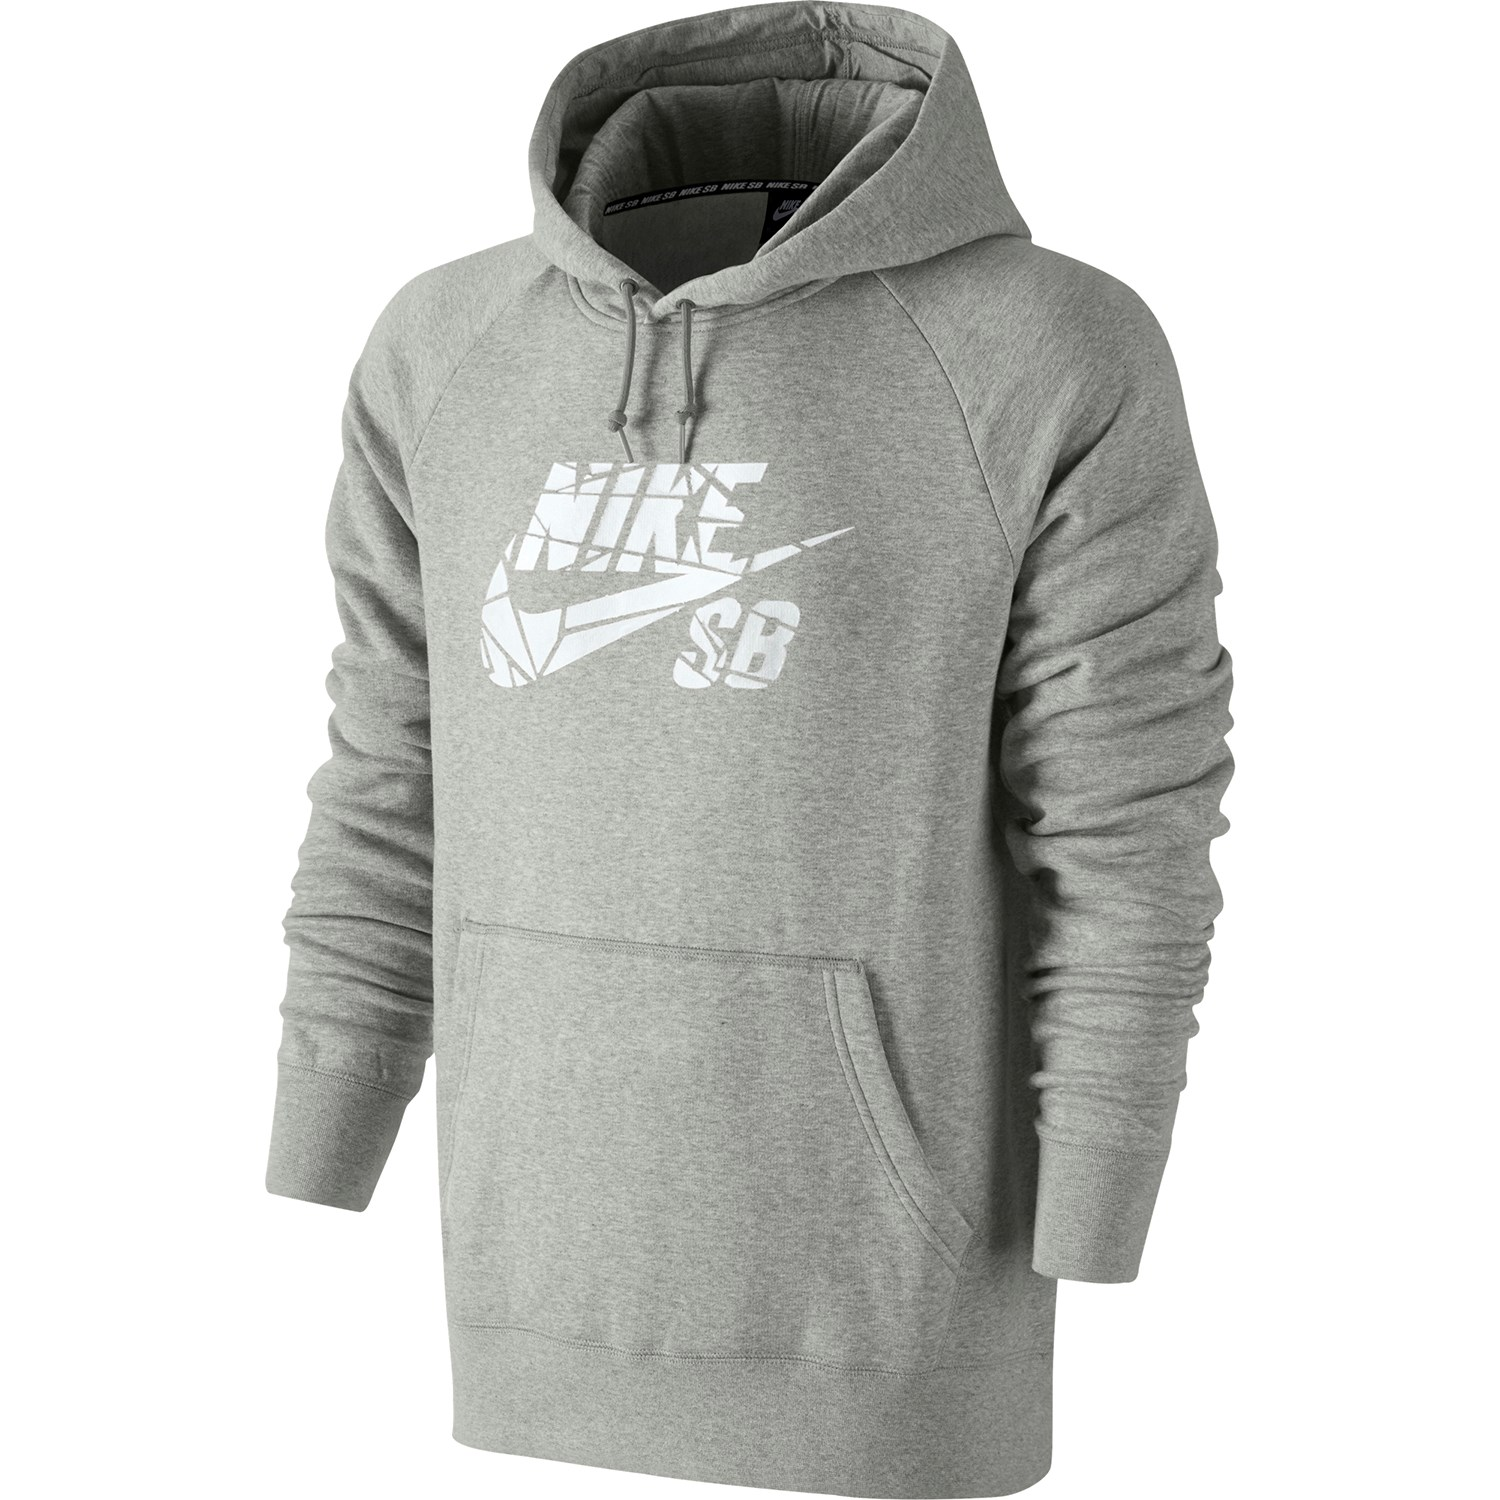 3f004a28c3 Nike SB Icon Grip Tape Pullover Hoodie